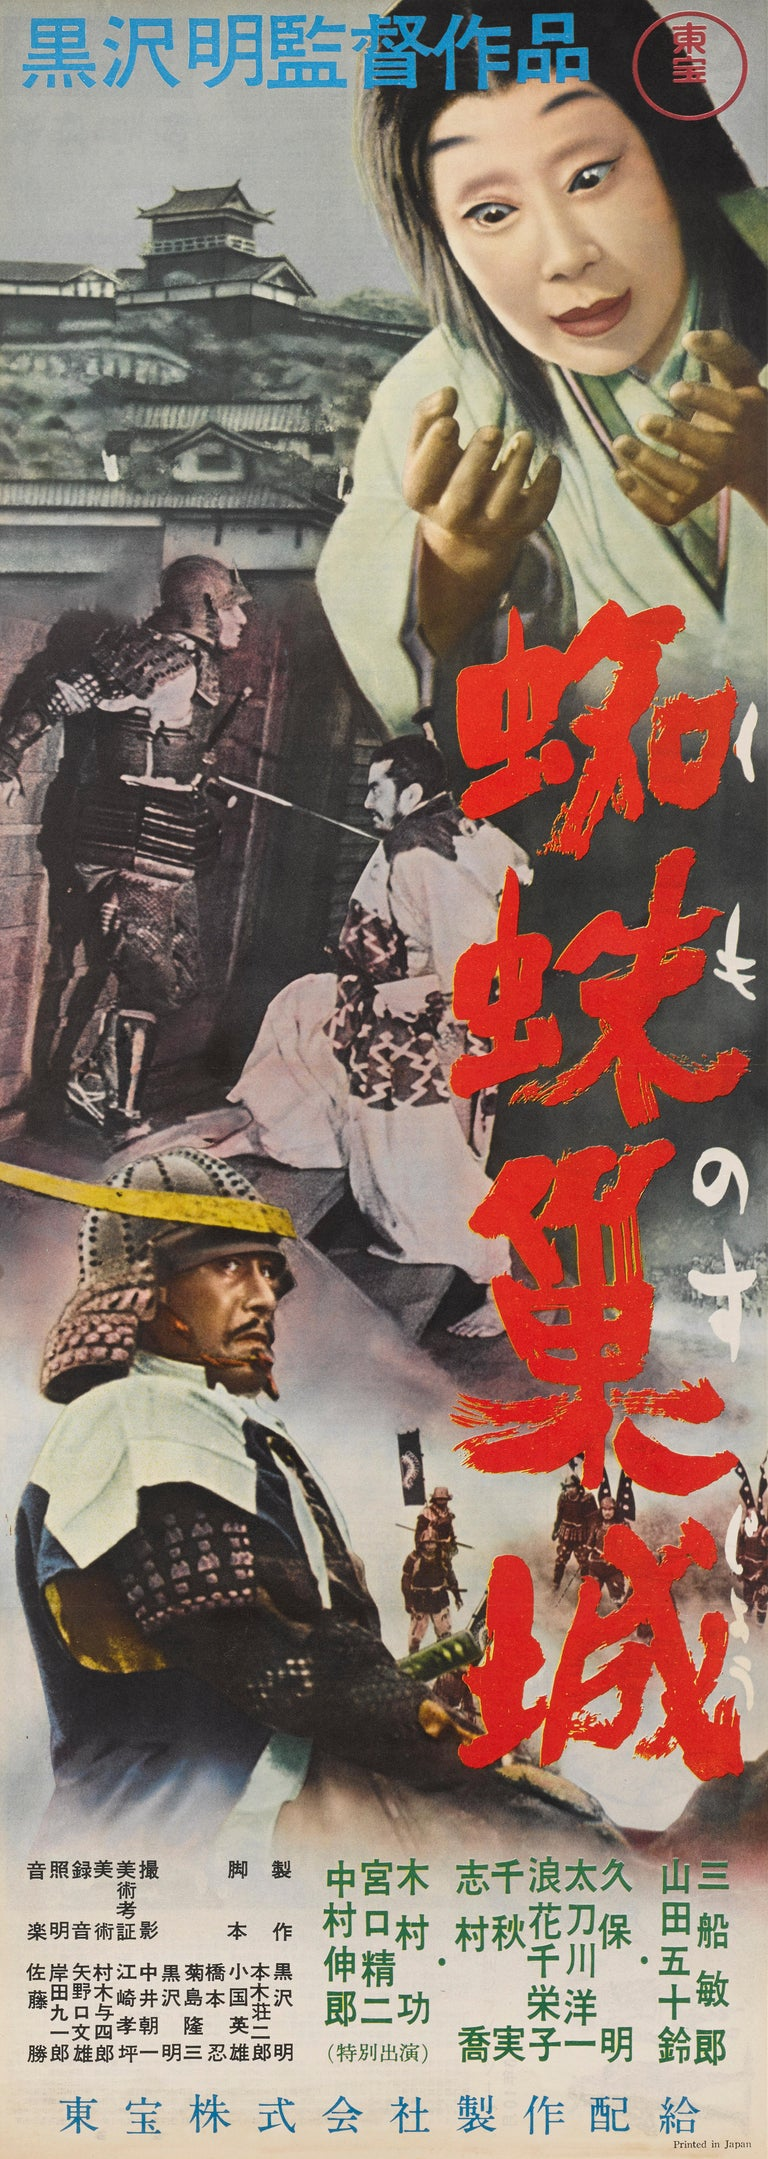 Original Japanese movie poster for the 1957 war, drama directed Akira Kurosawa and starring Toshiro Mifune. The film is a brilliant adaptation of William Shakespeare's Macbeth. This poster is conservation paper backed and would be shipped flat by